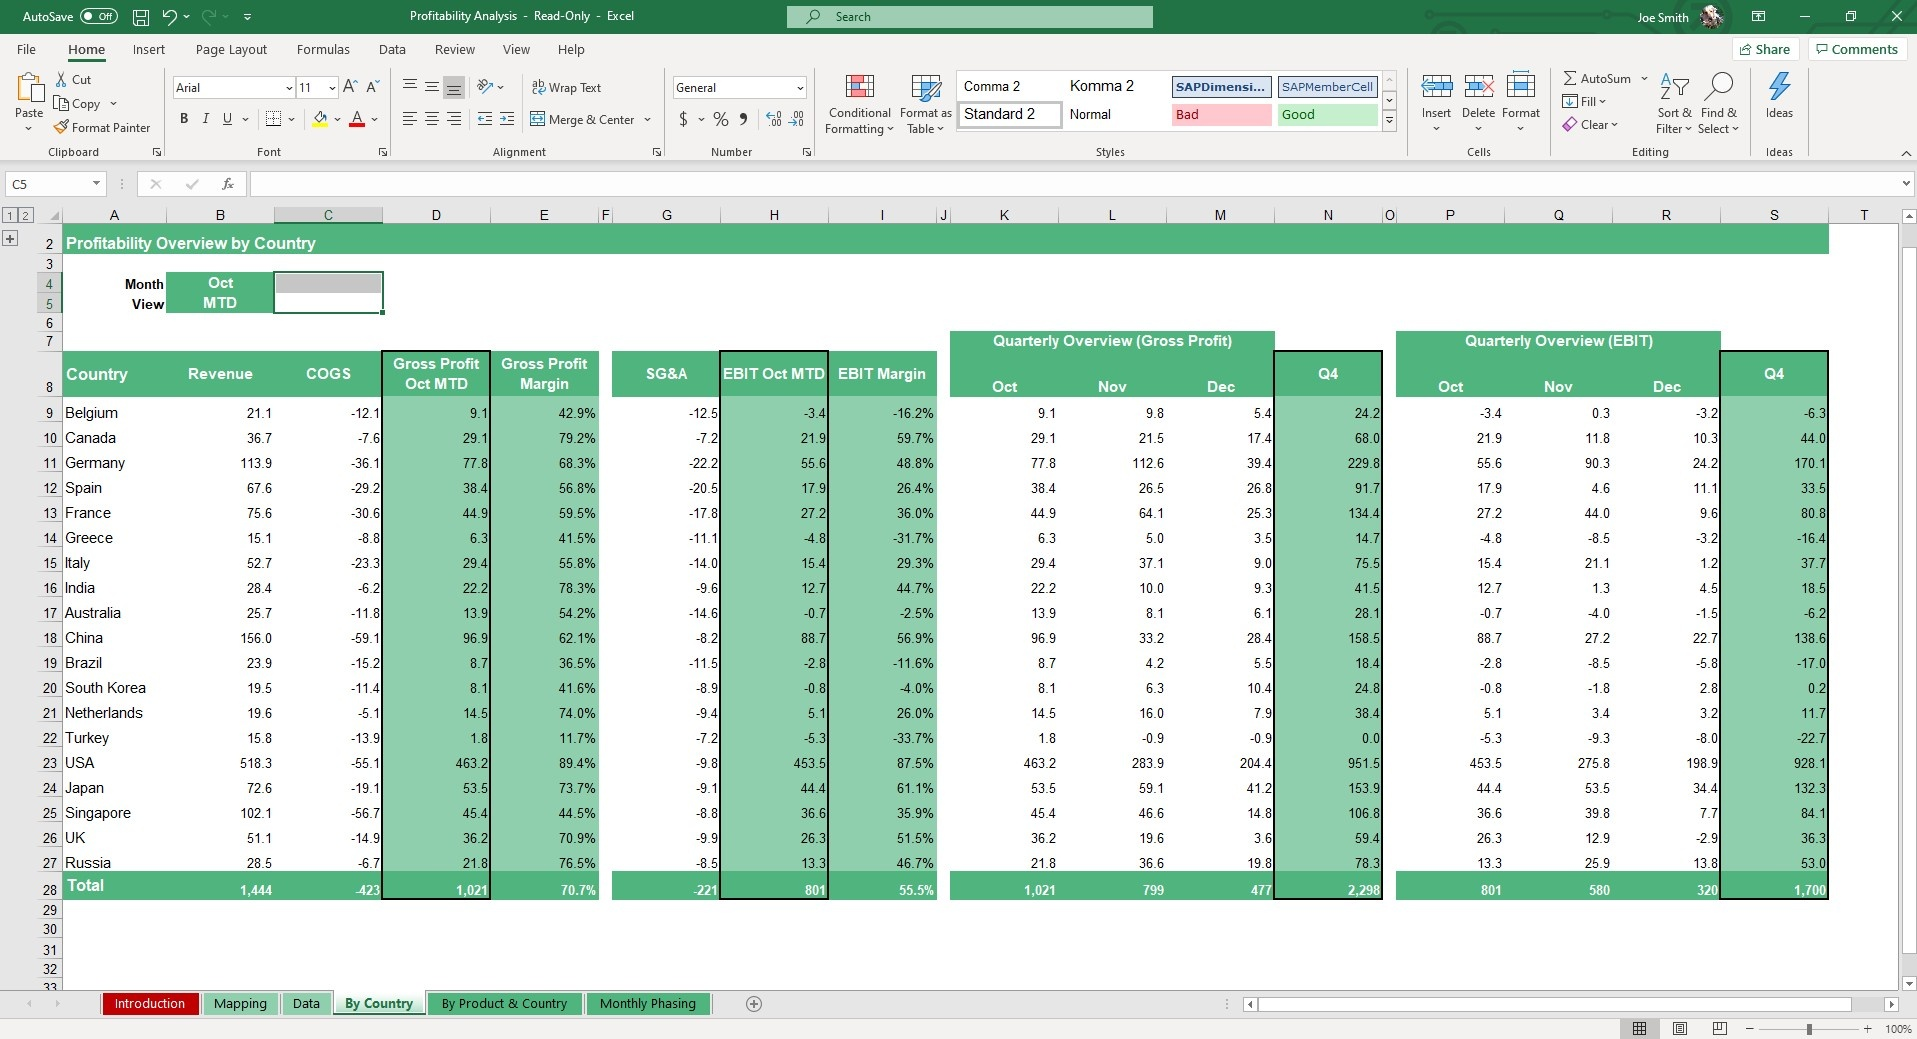 Full Size of Profitability Analysis Excel Template Simple Sheets Job Report Oje8zi2sshaseaxw7l4y File Spreadsheet